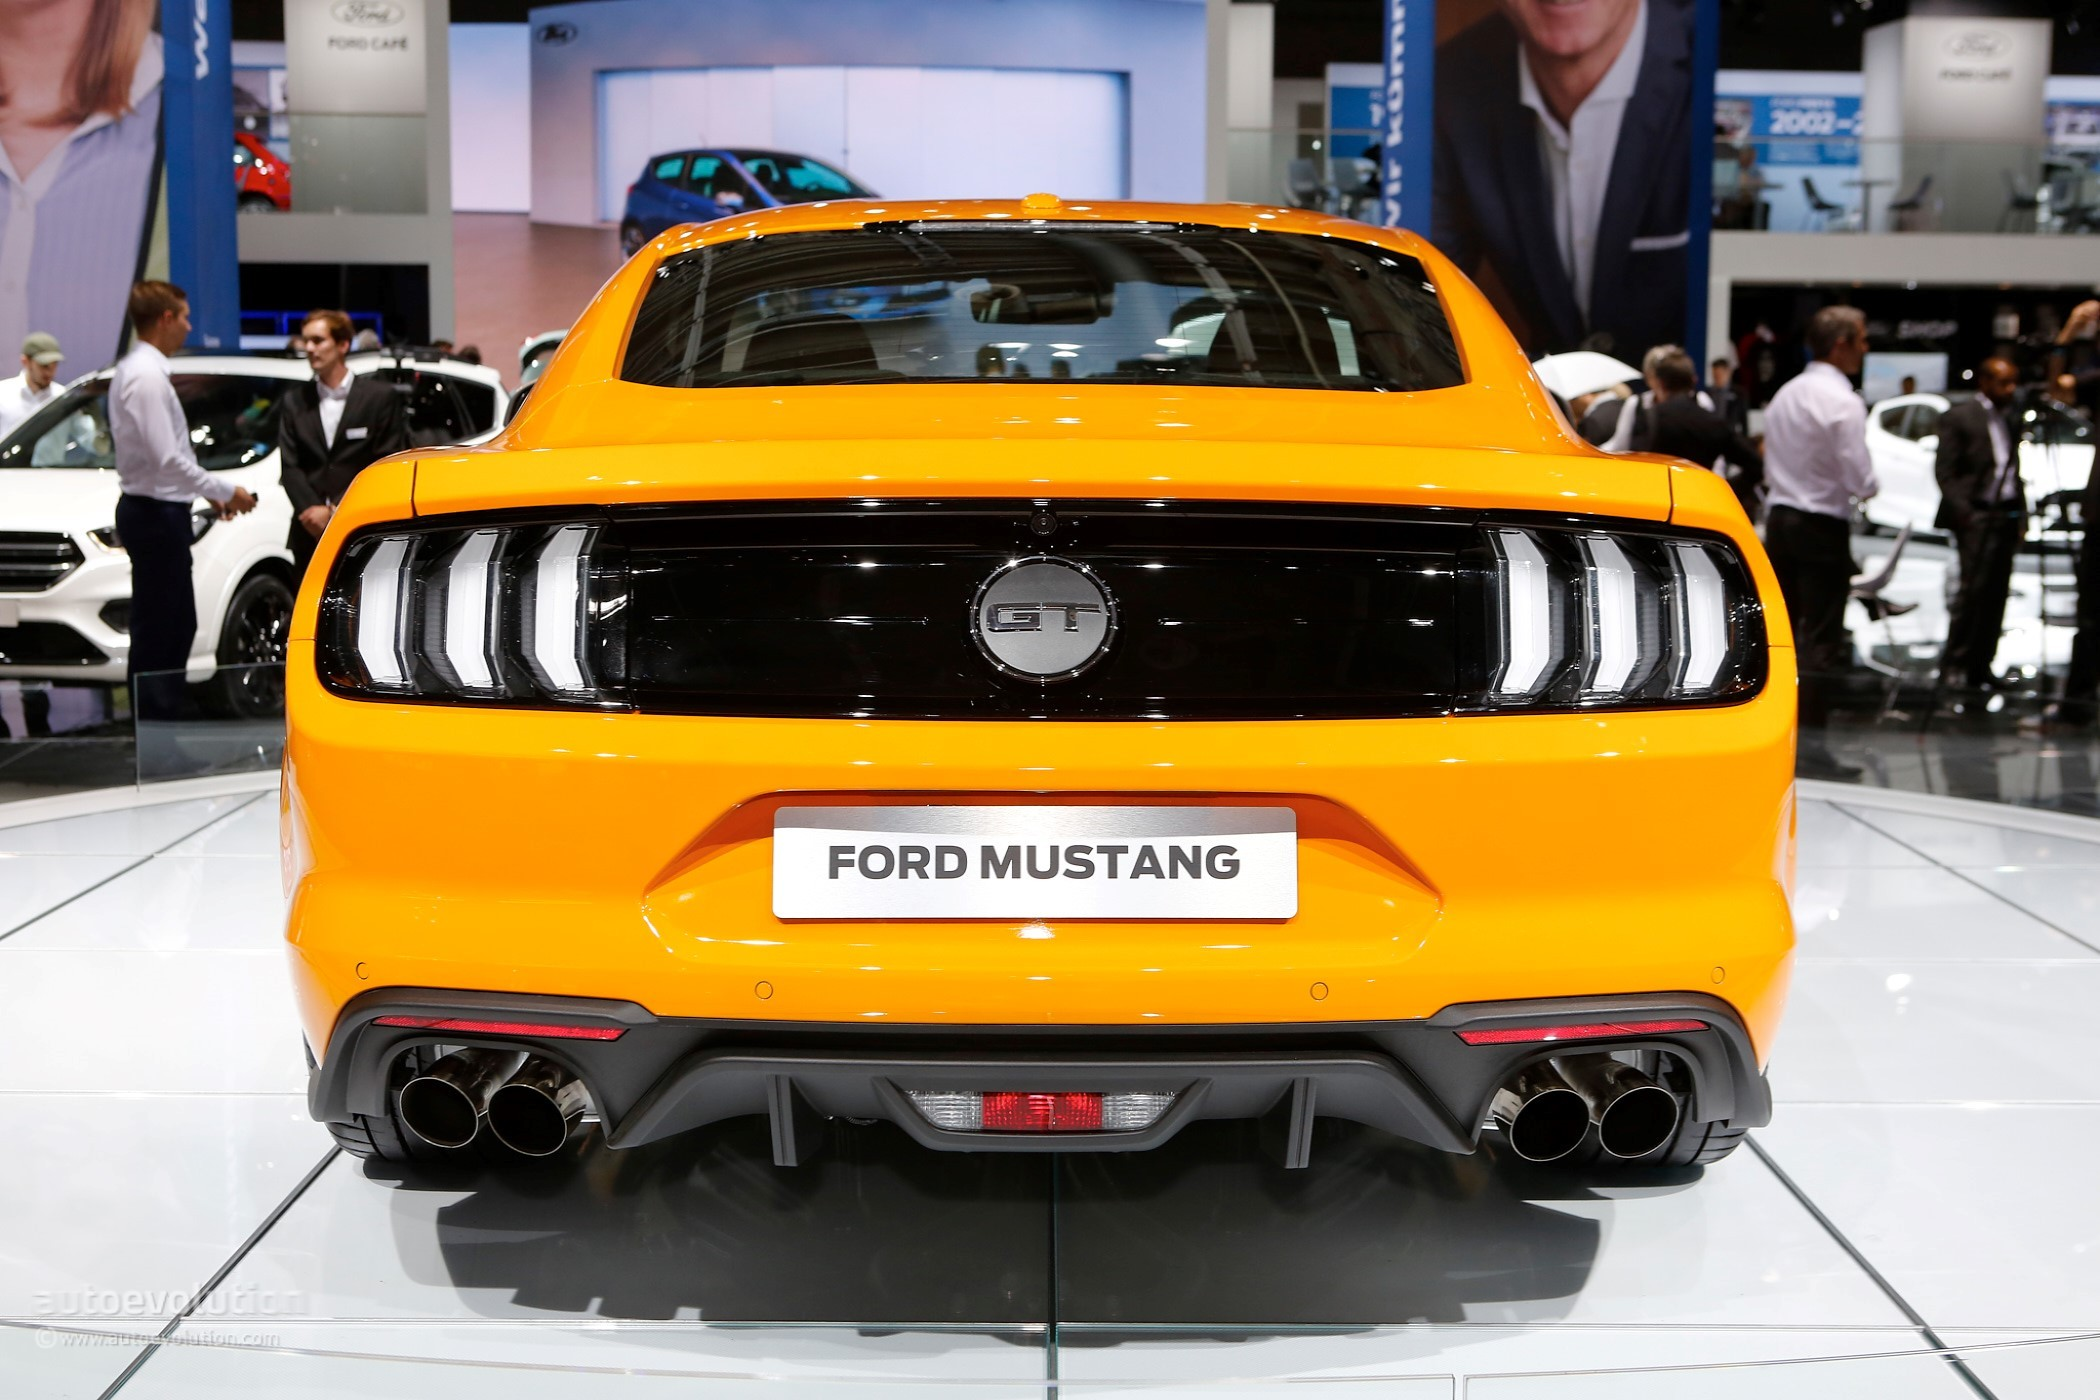 2018 ford mustang facelift puts on its european clothes in frankfurt autoevolution. Black Bedroom Furniture Sets. Home Design Ideas